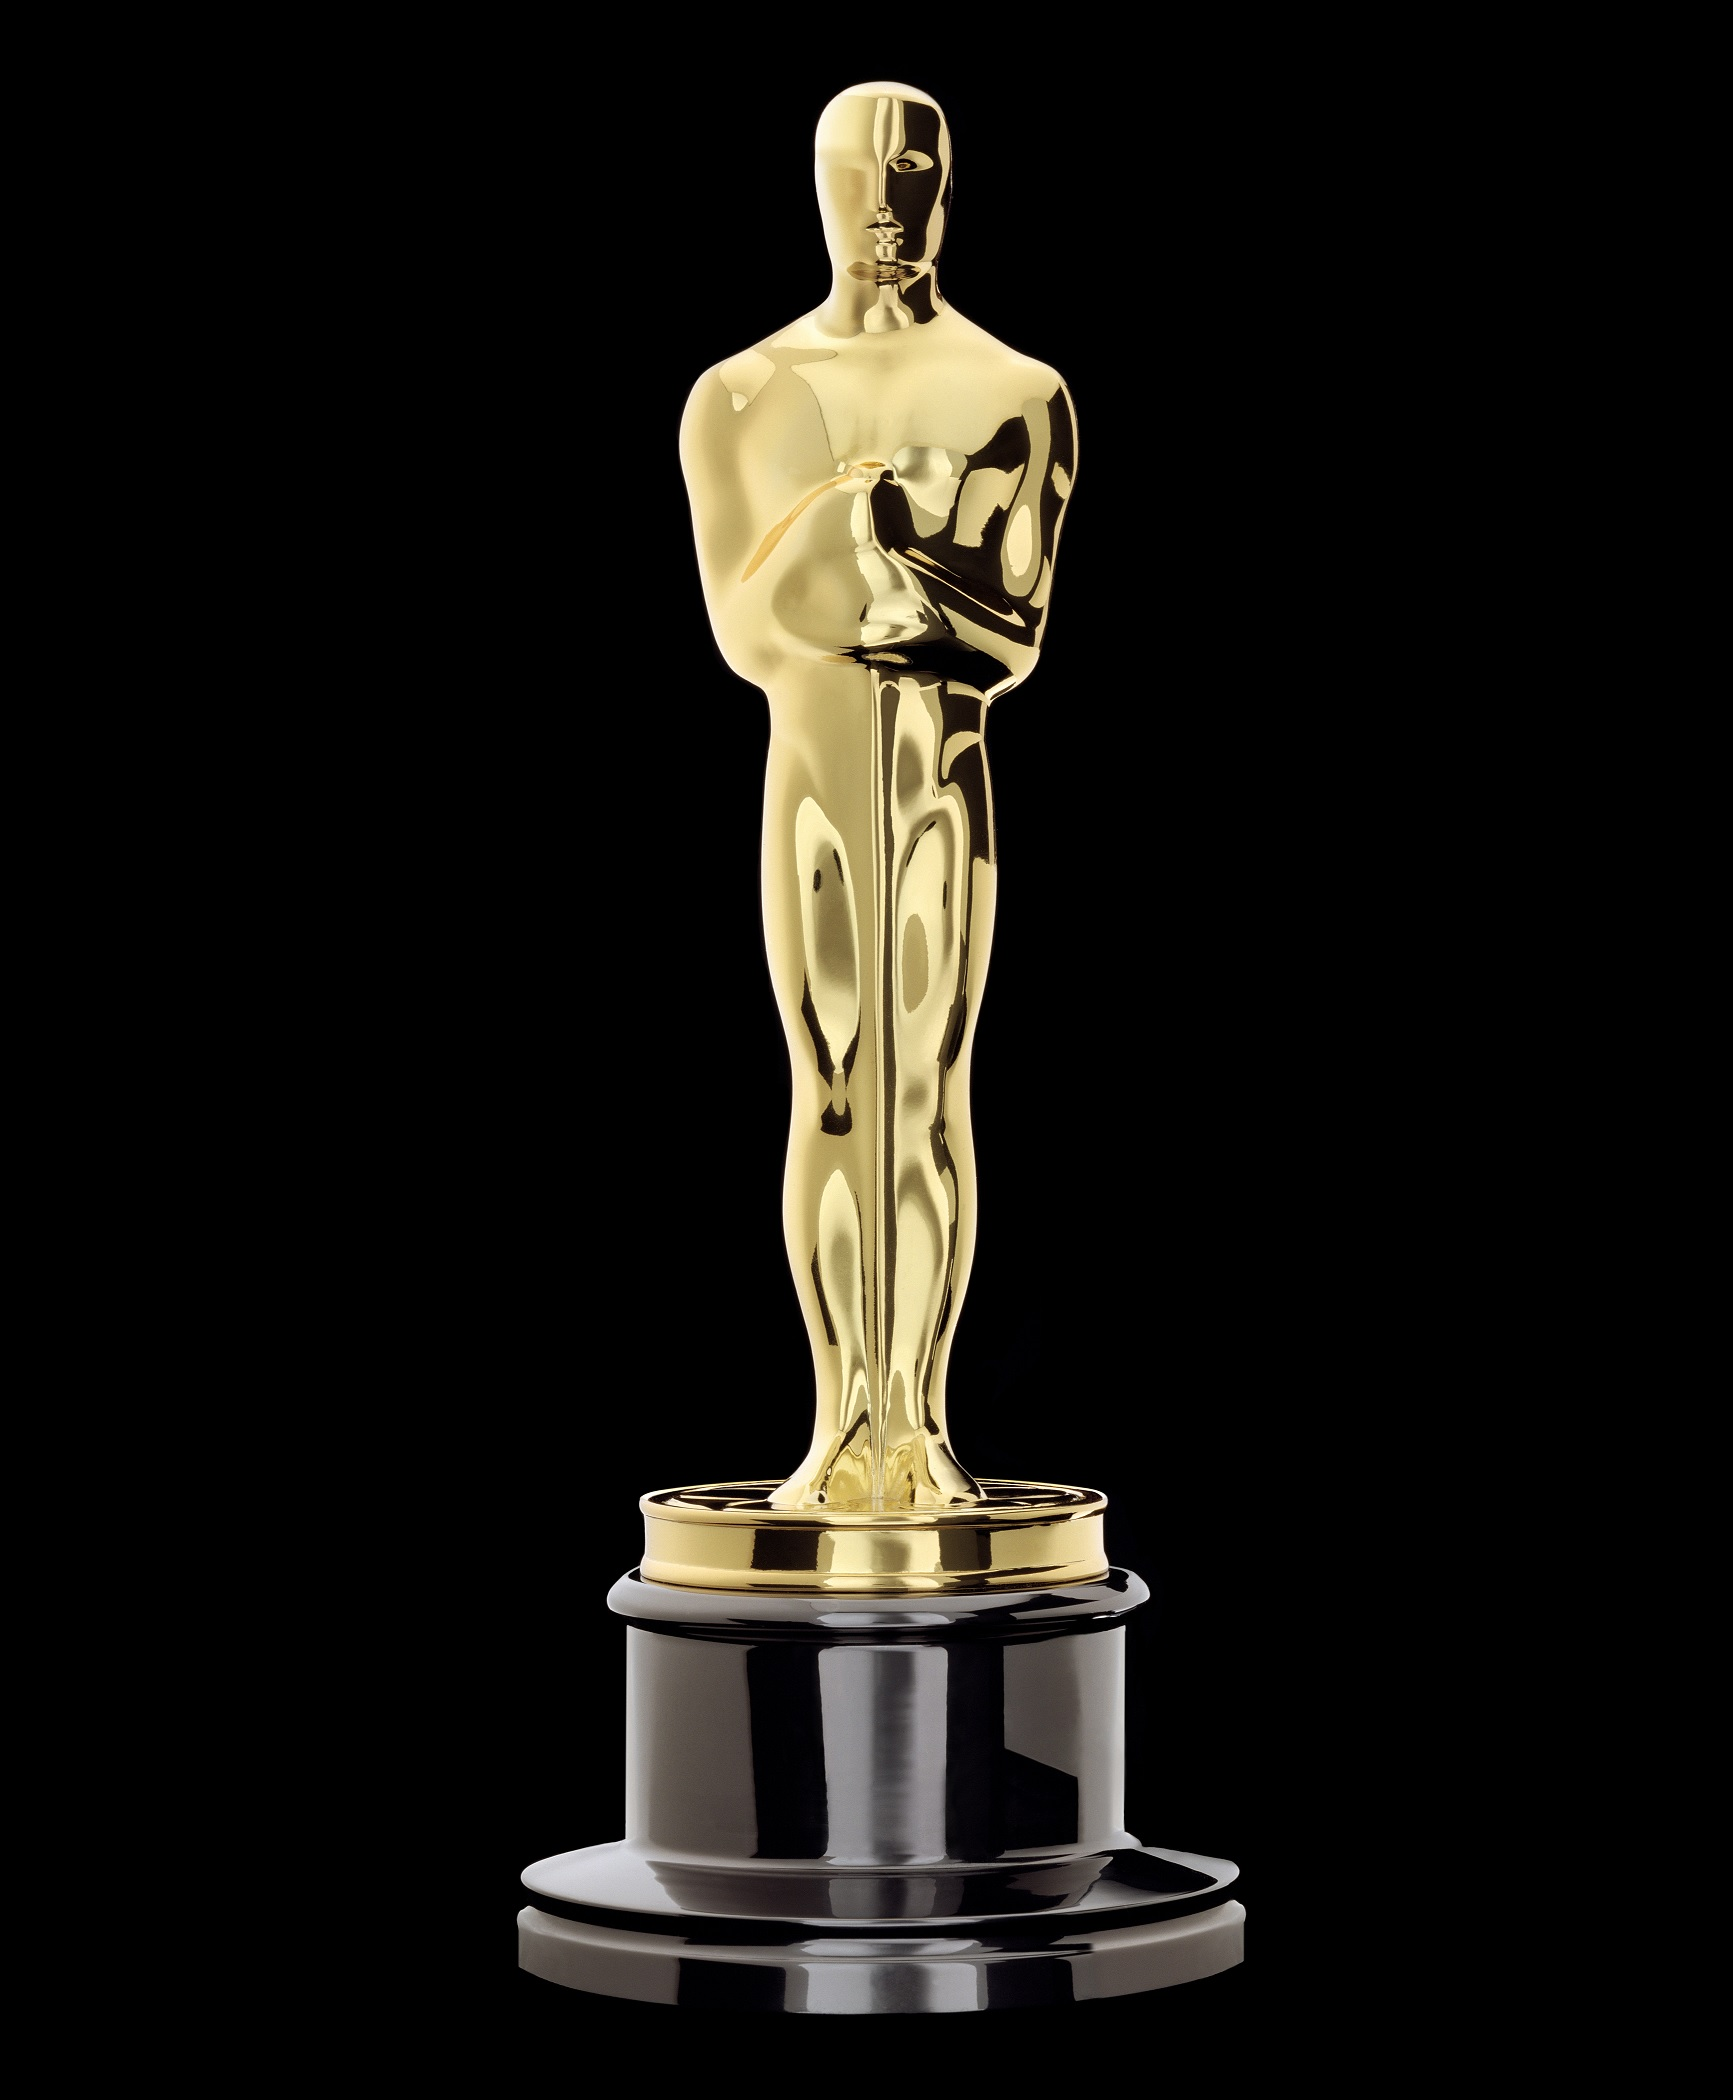 Oscar Statuette Daniel Day Lewis to Present at the Oscars